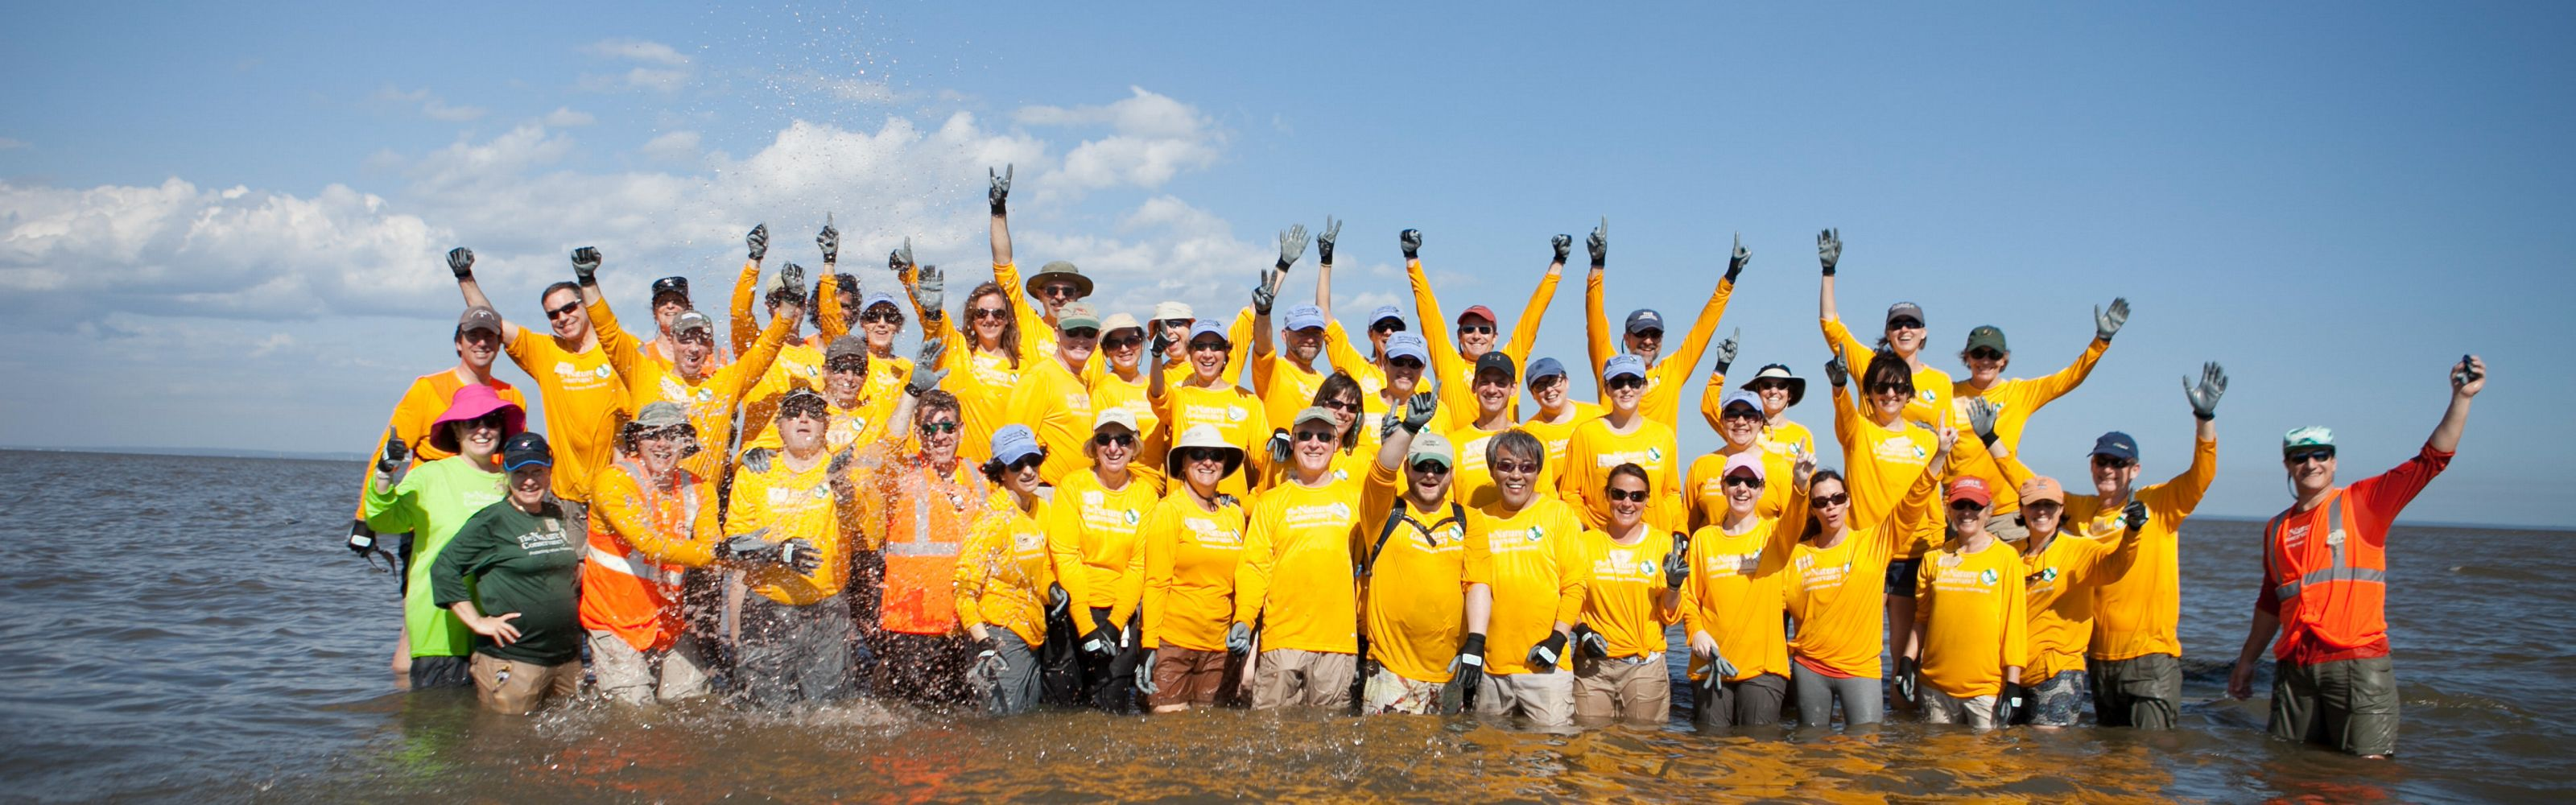 TNC Senior Leaders work together to build five reef structures at Arlington Cove in Mobile Bay, Alabama